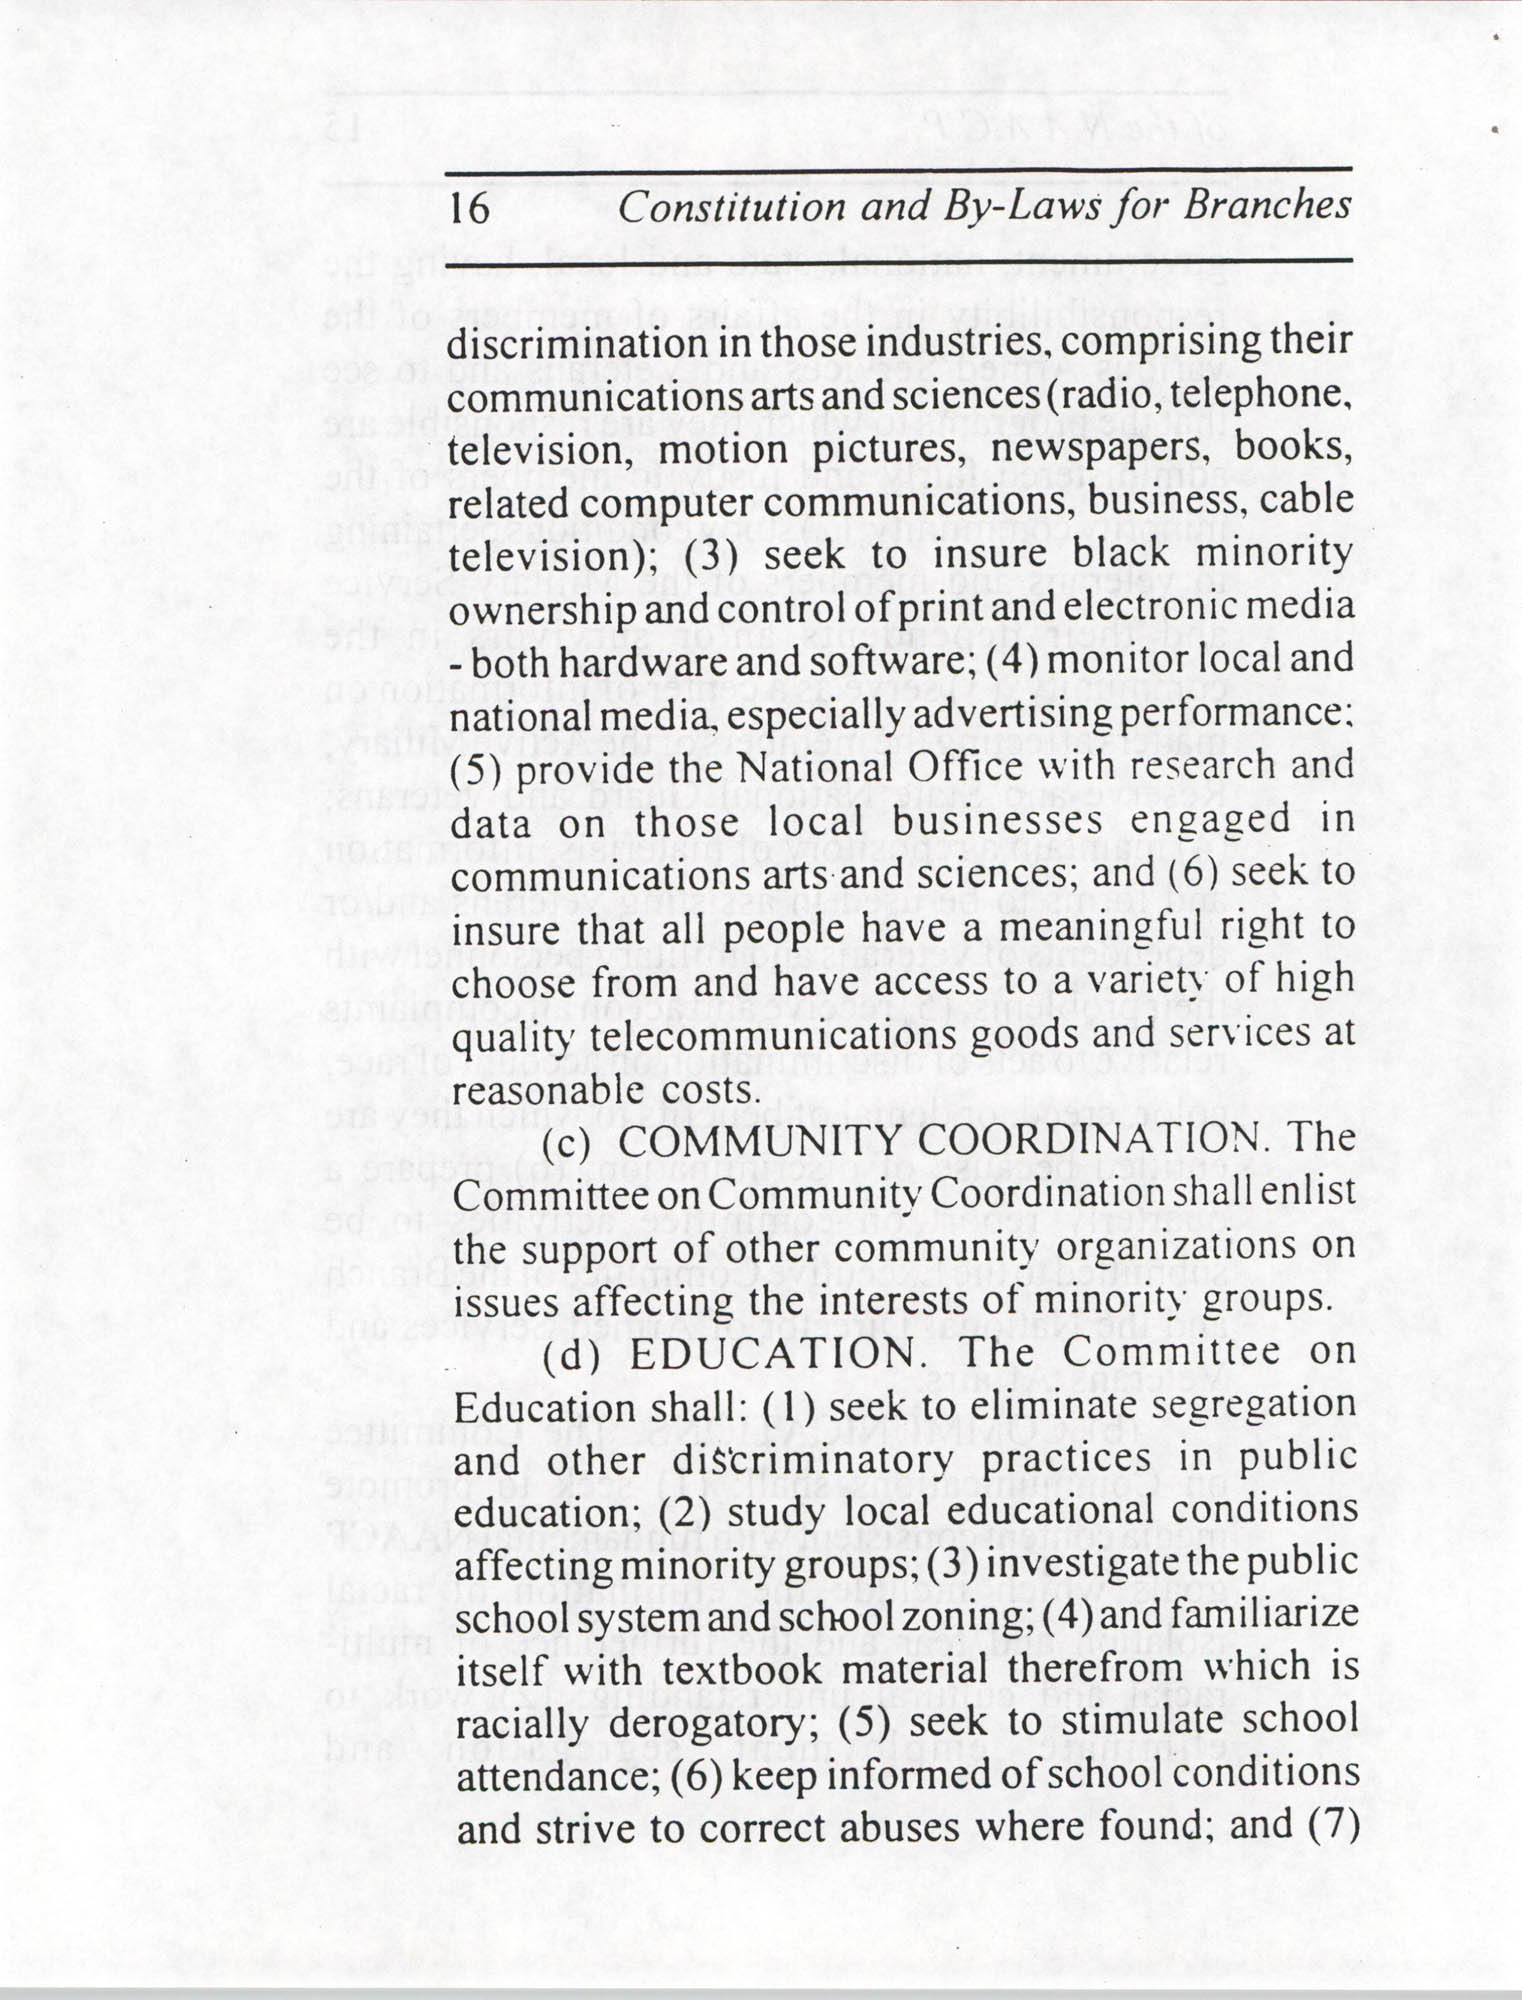 Constitution and By-Laws for Branches of the NAACP, July 1994, Page 16